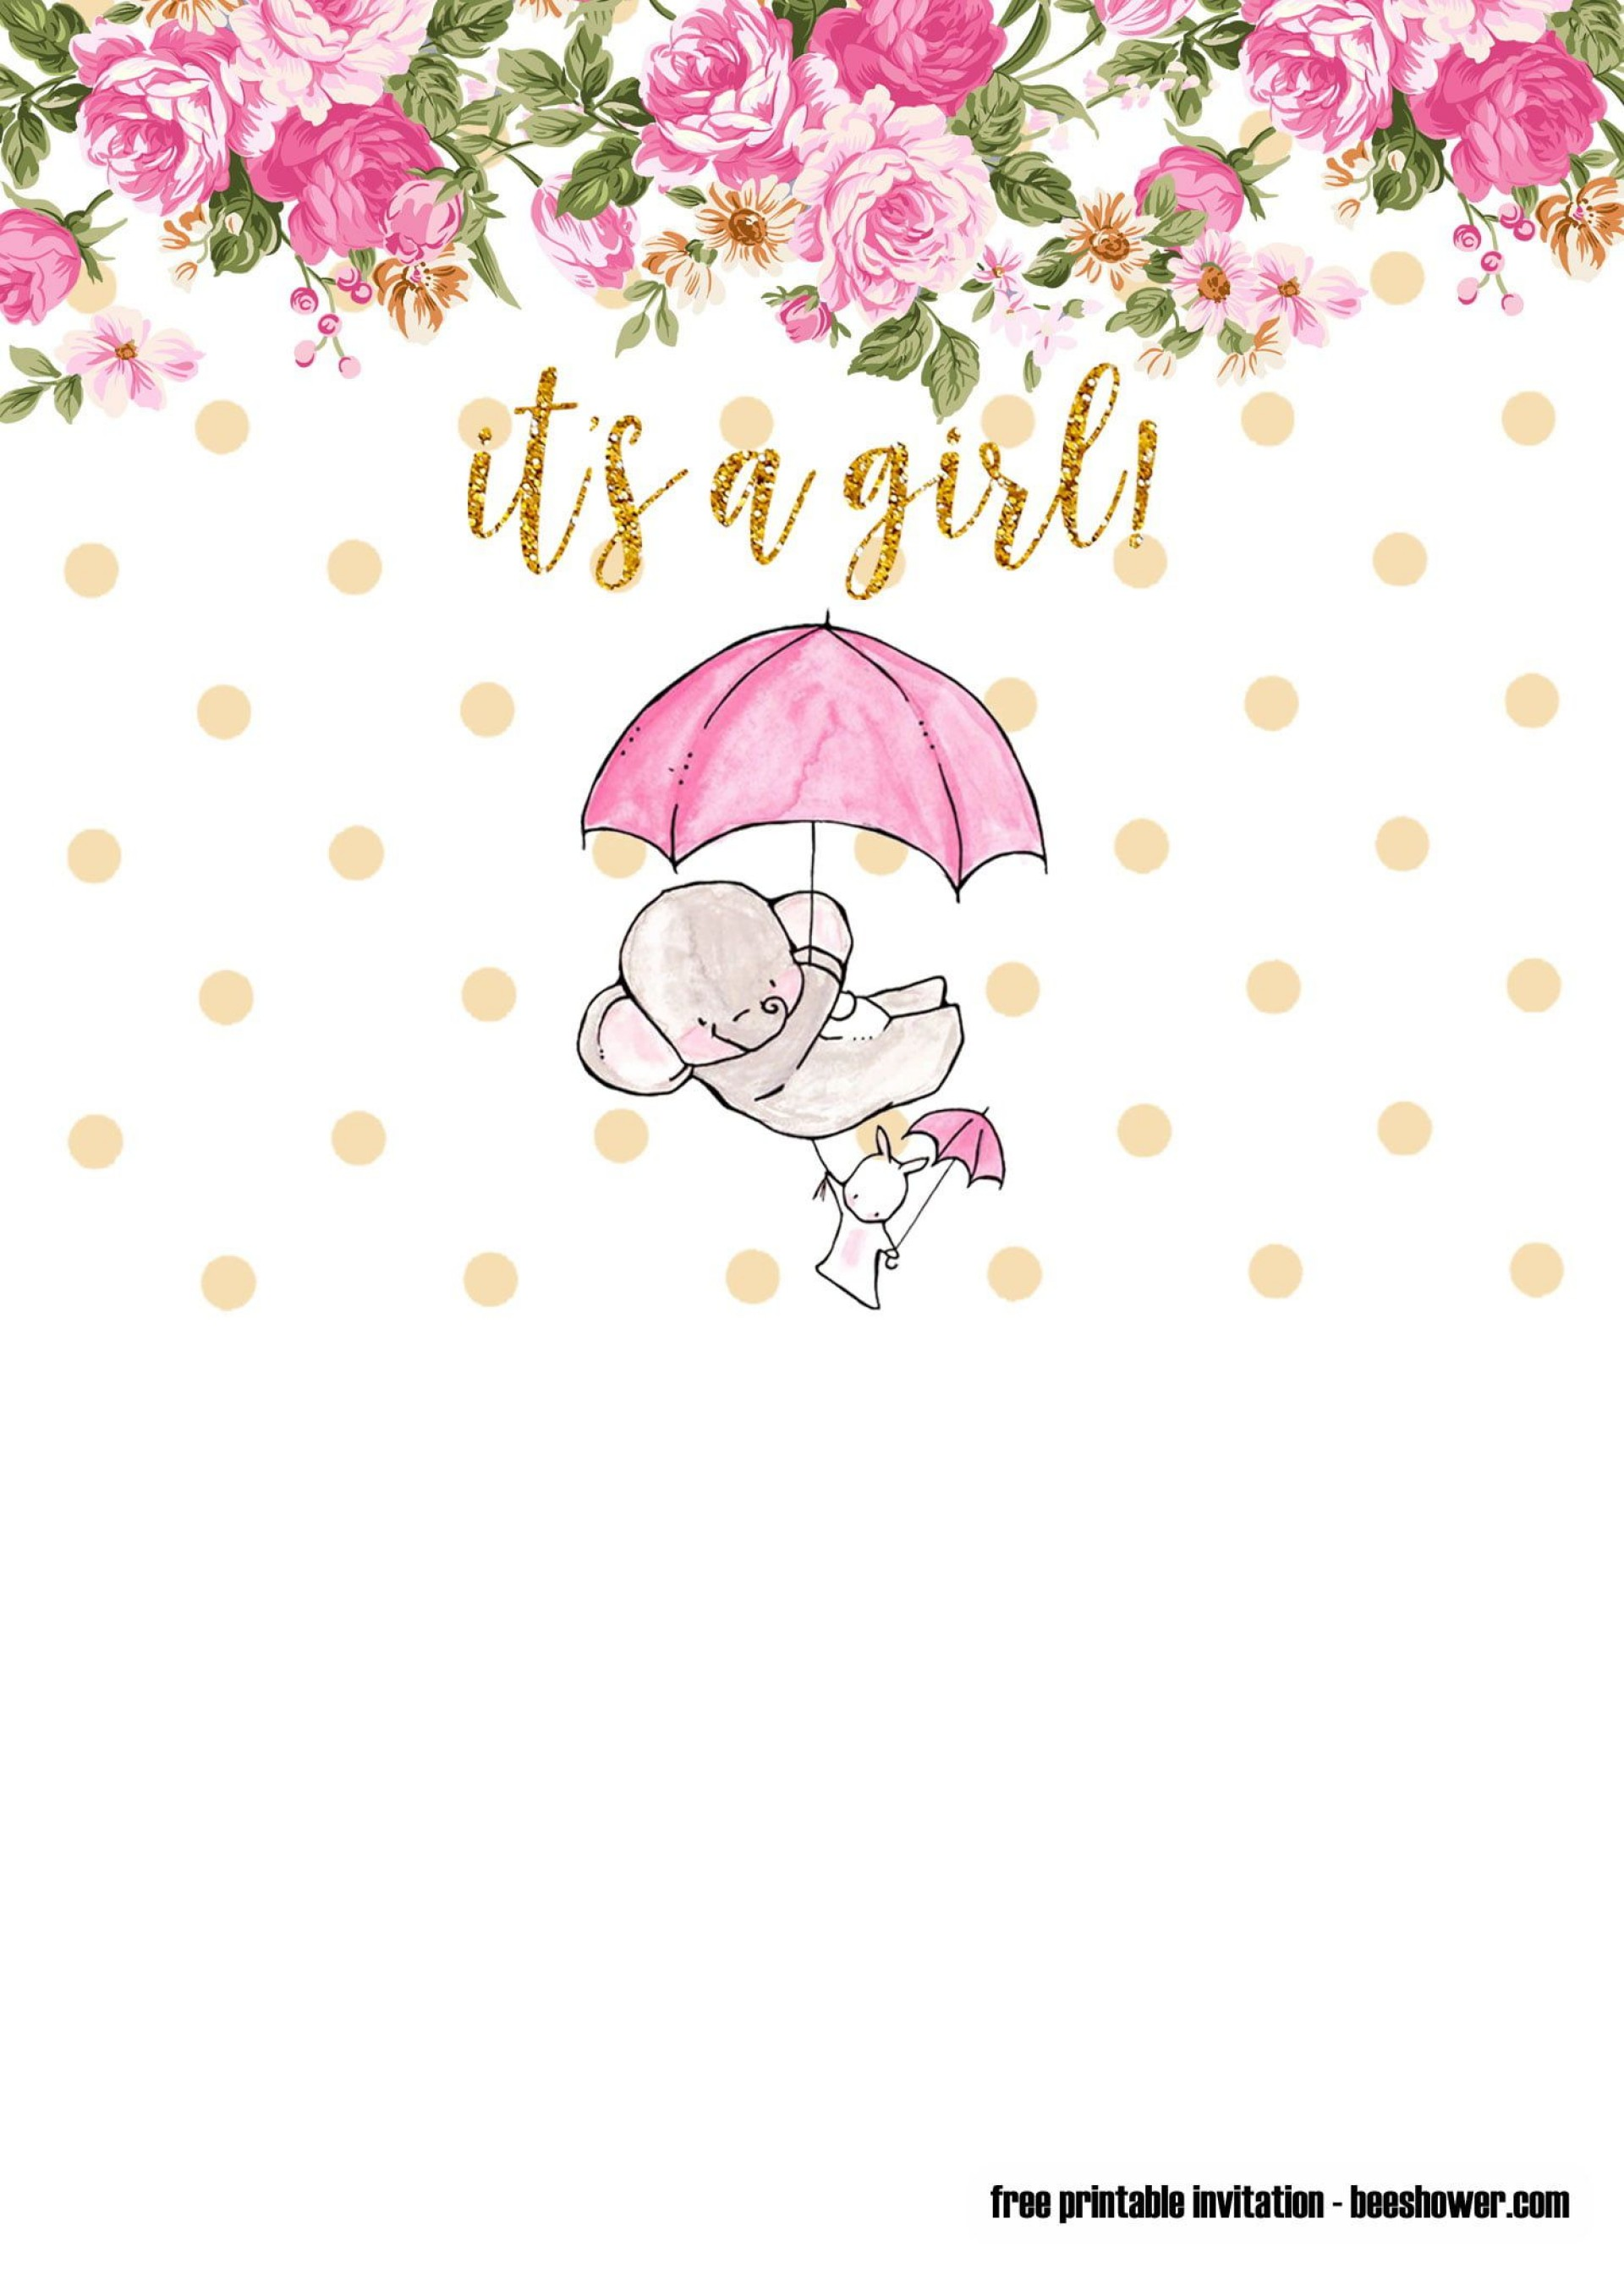 010 Incredible Free Girl Baby Shower Invitation To Print Example  Printable Twin1920